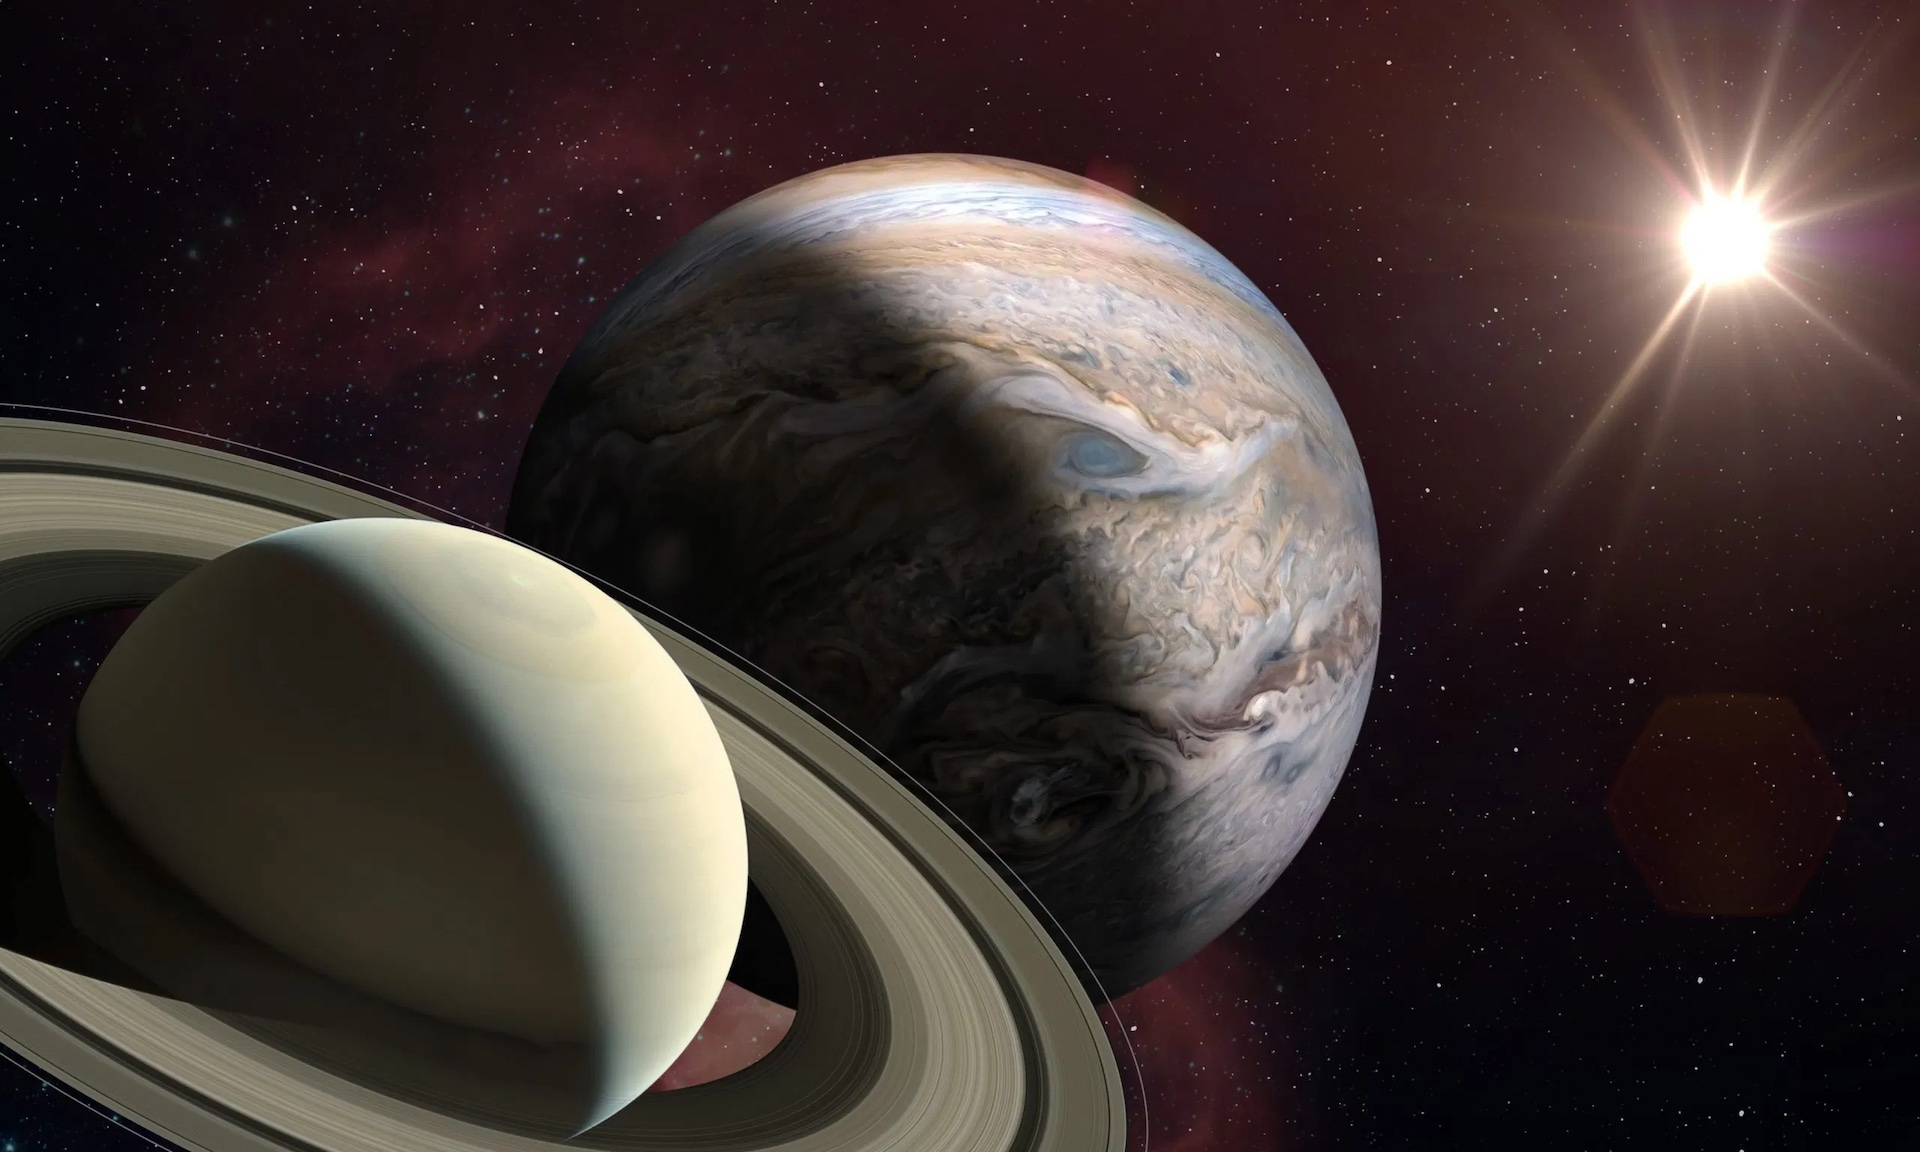 The Grand Conjunction of Jupiter and Saturn 2020